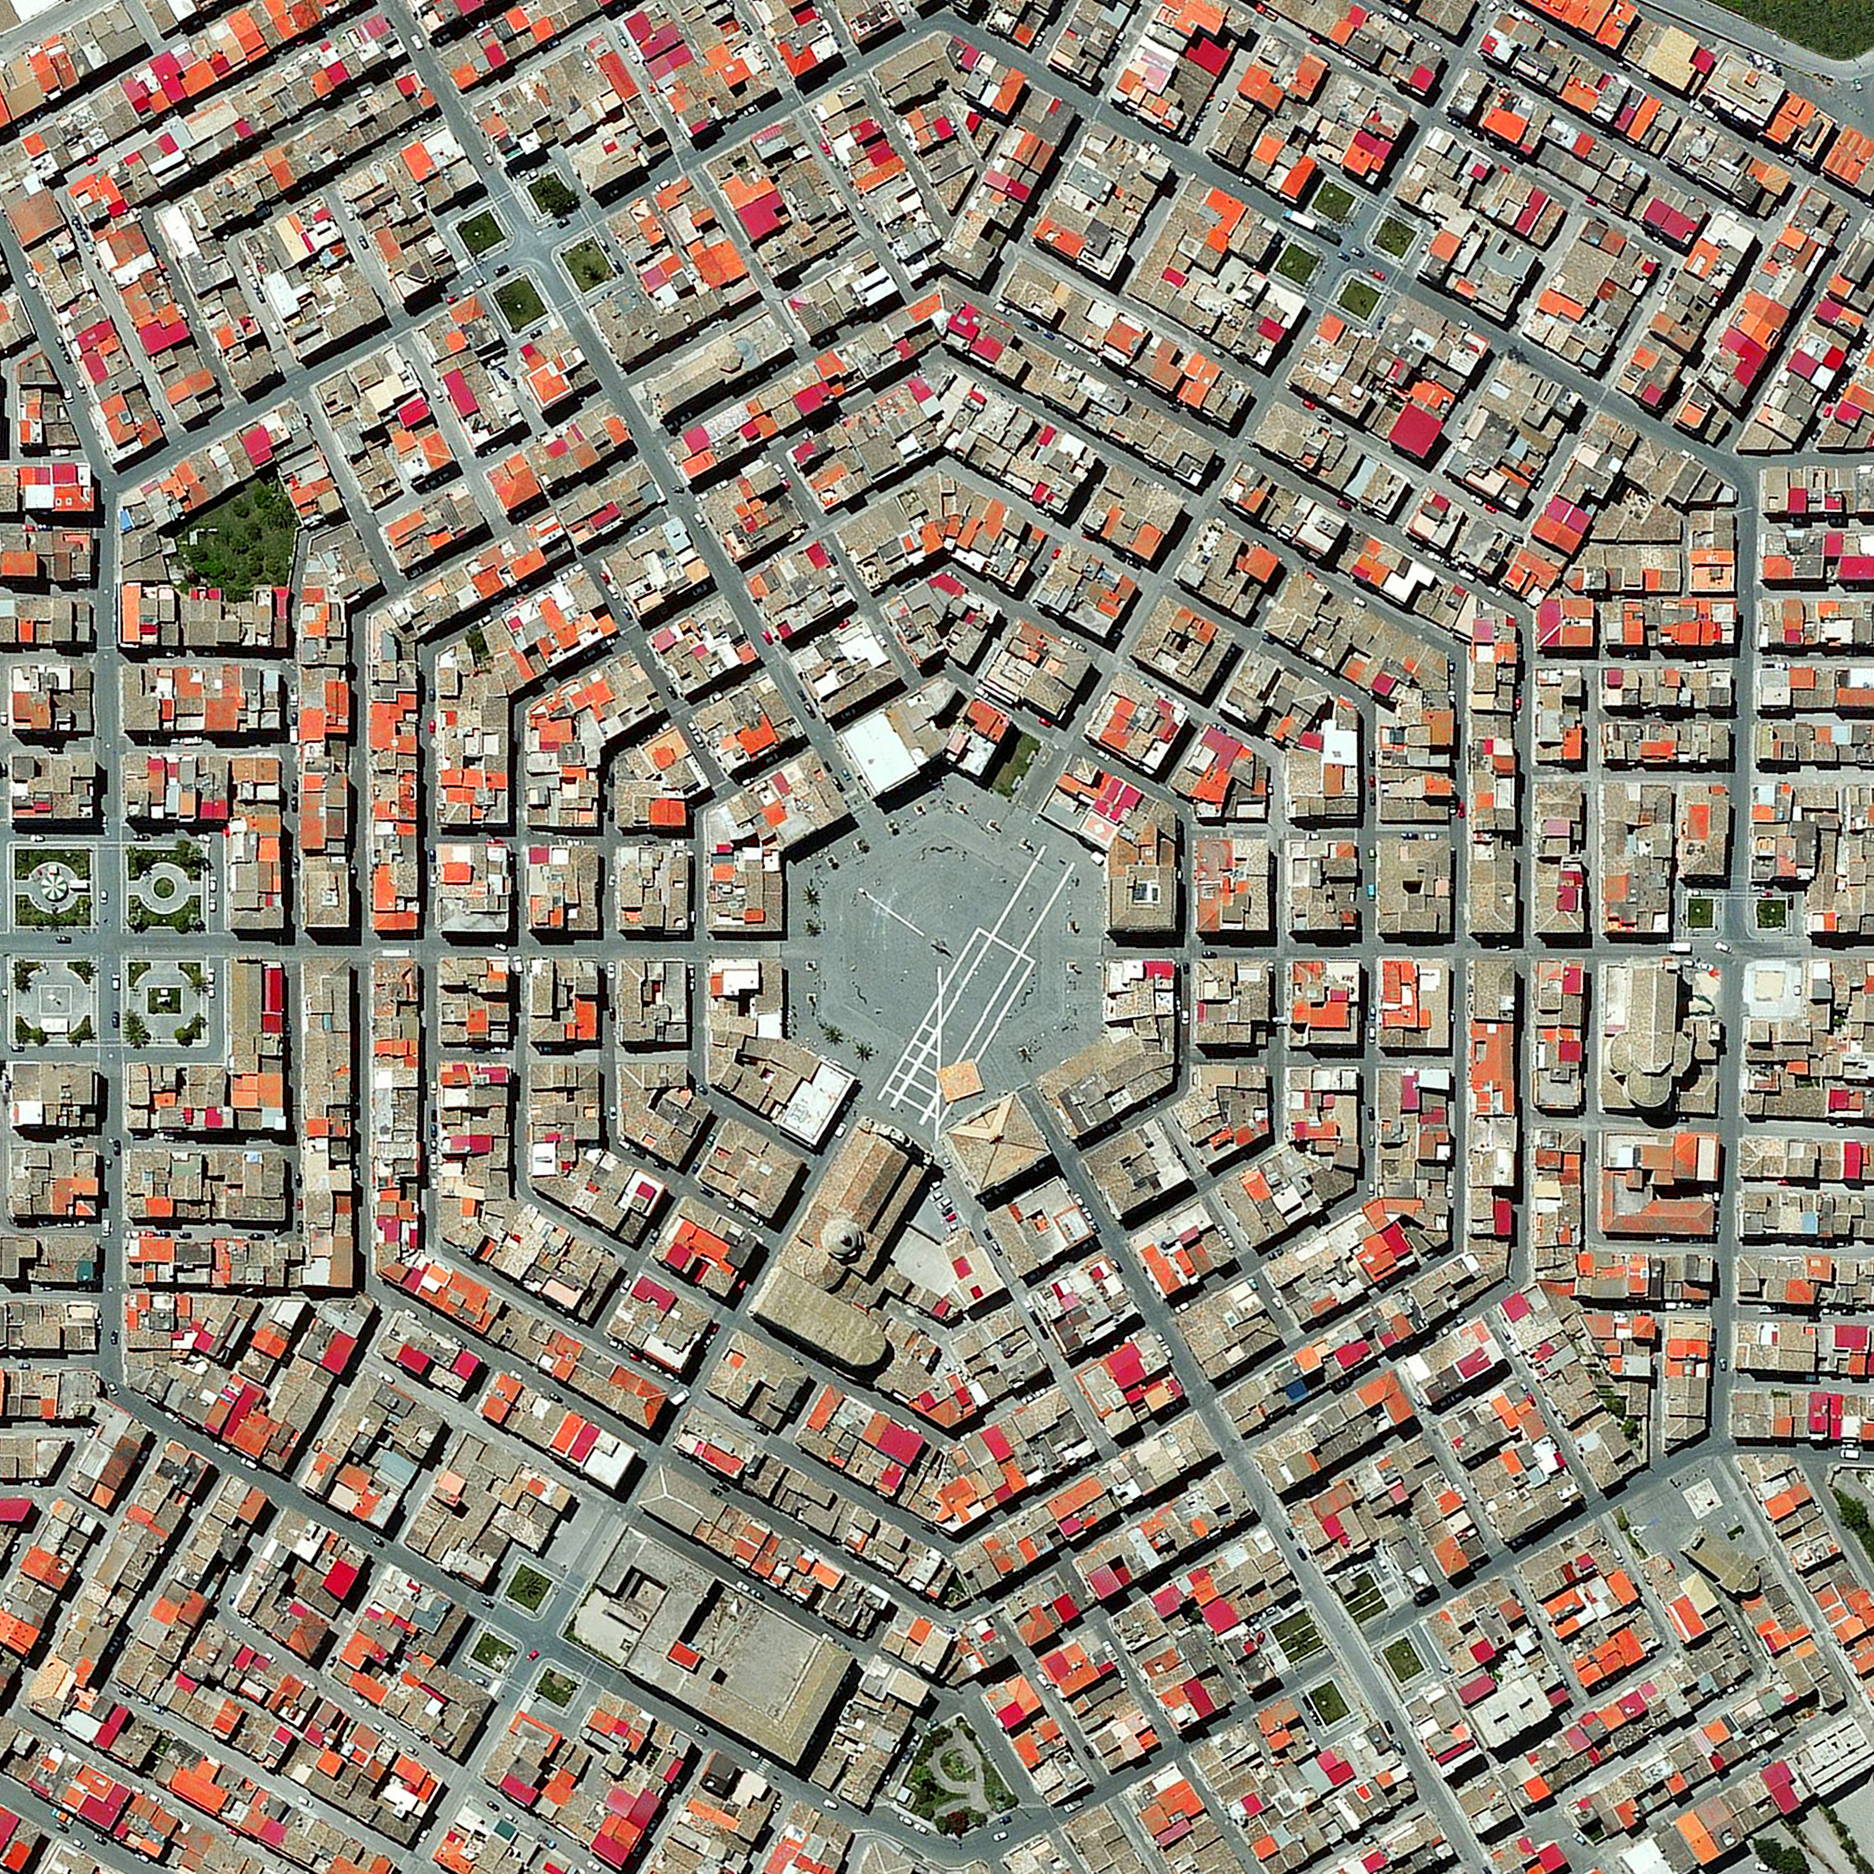 2/27/2016   Grammichele    Sicily, Italy  37°13′N 14°38′E    Grammichele is located in Sicily, in southern Italy. The town was constructed in 1693 with a distinctive hexagonal street plan after an earthquake destroyed the nearby, old town of Occhialà.